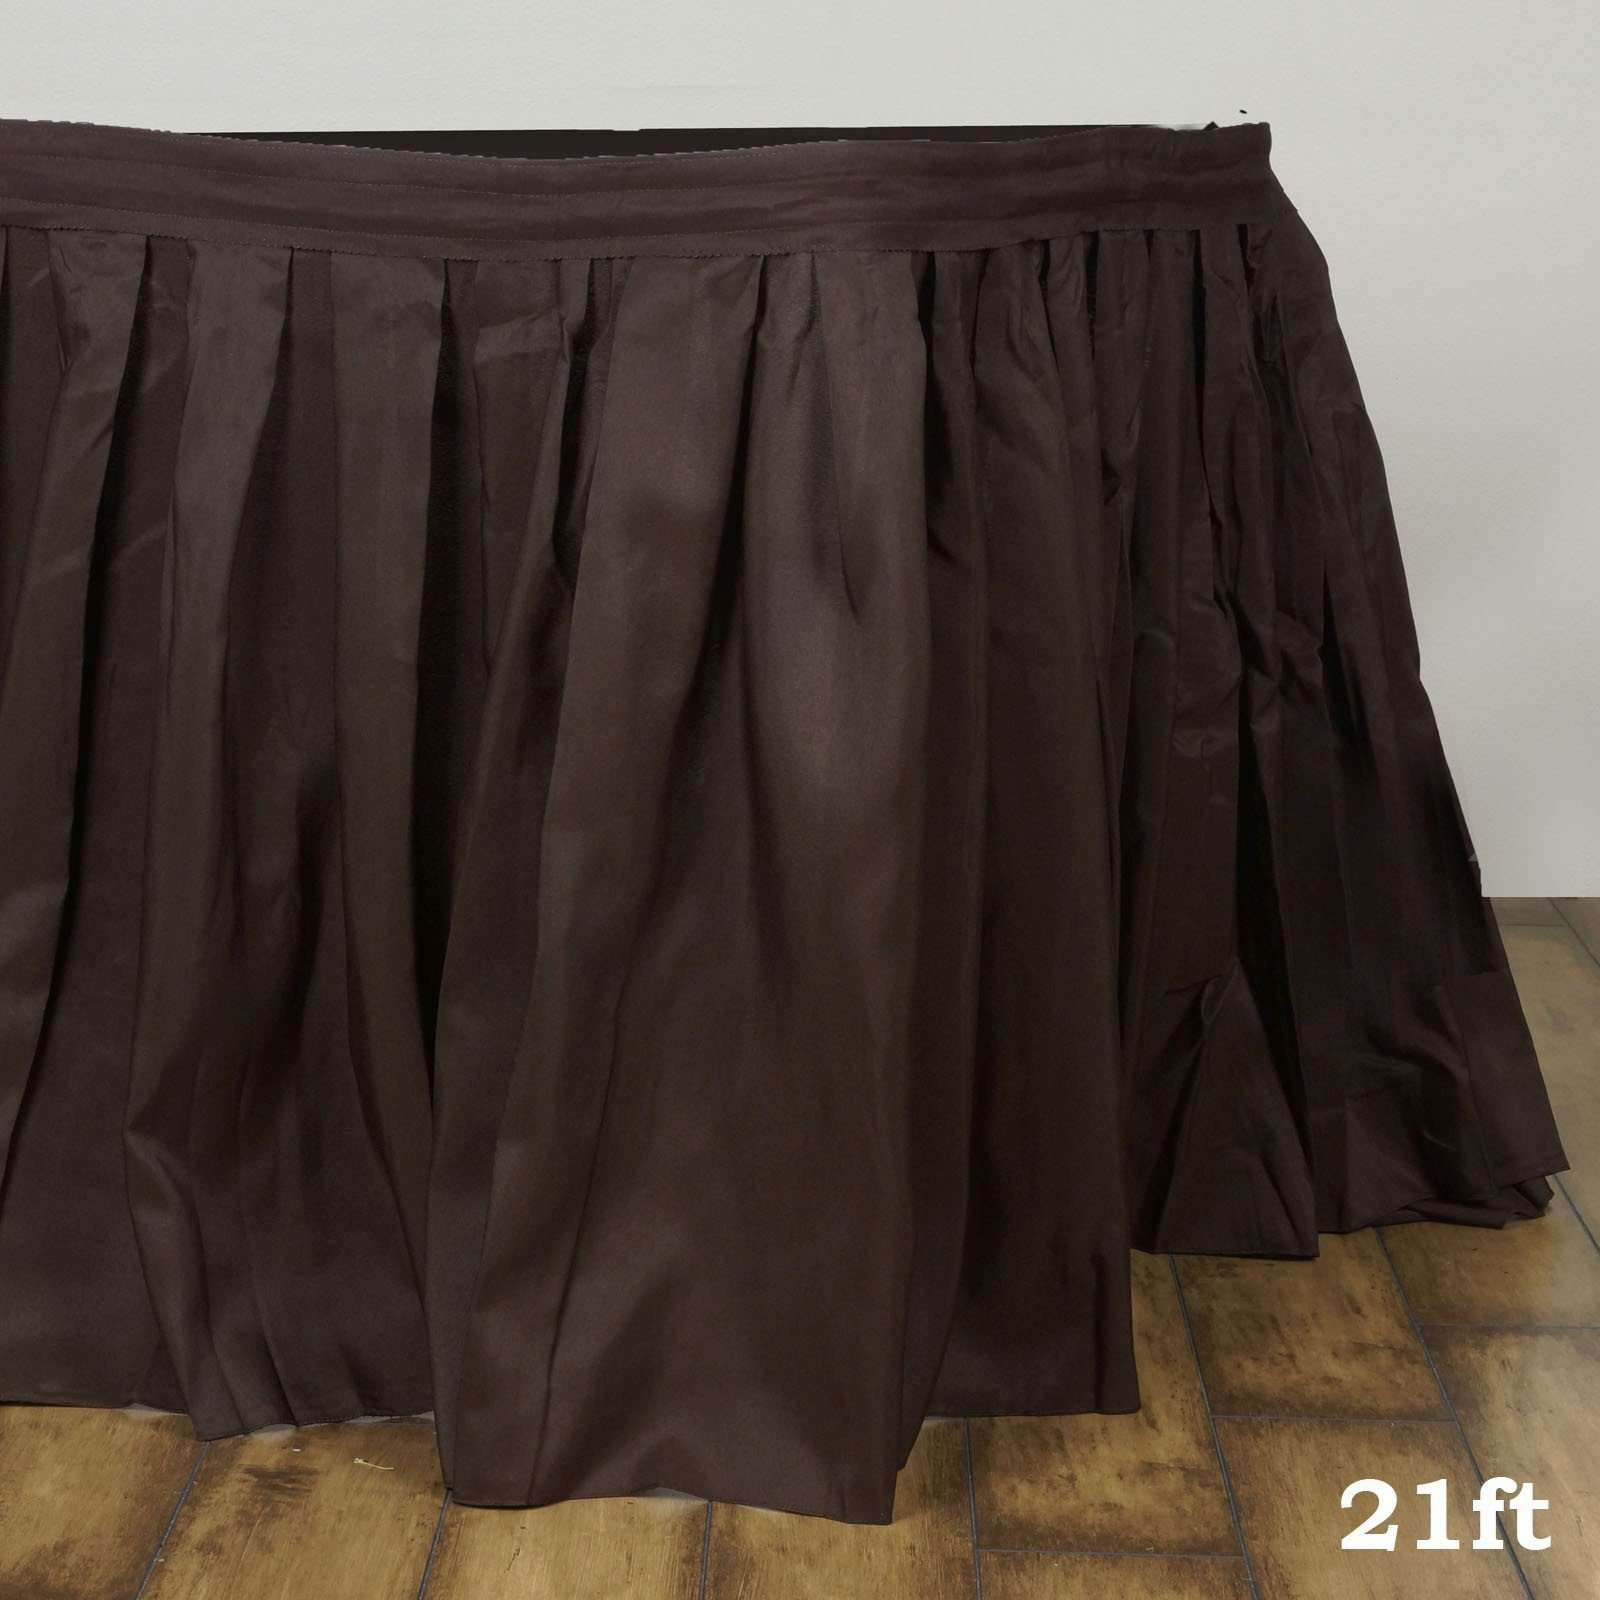 5c17d3082 21FT CHOCOLATE Wholesale Polyester Table Skirt For Wedding Banquet  Restaurant. 21FT CHOCOLATE Wholesale Polyester Table Skirt For Wedding  Banquet Restaurant